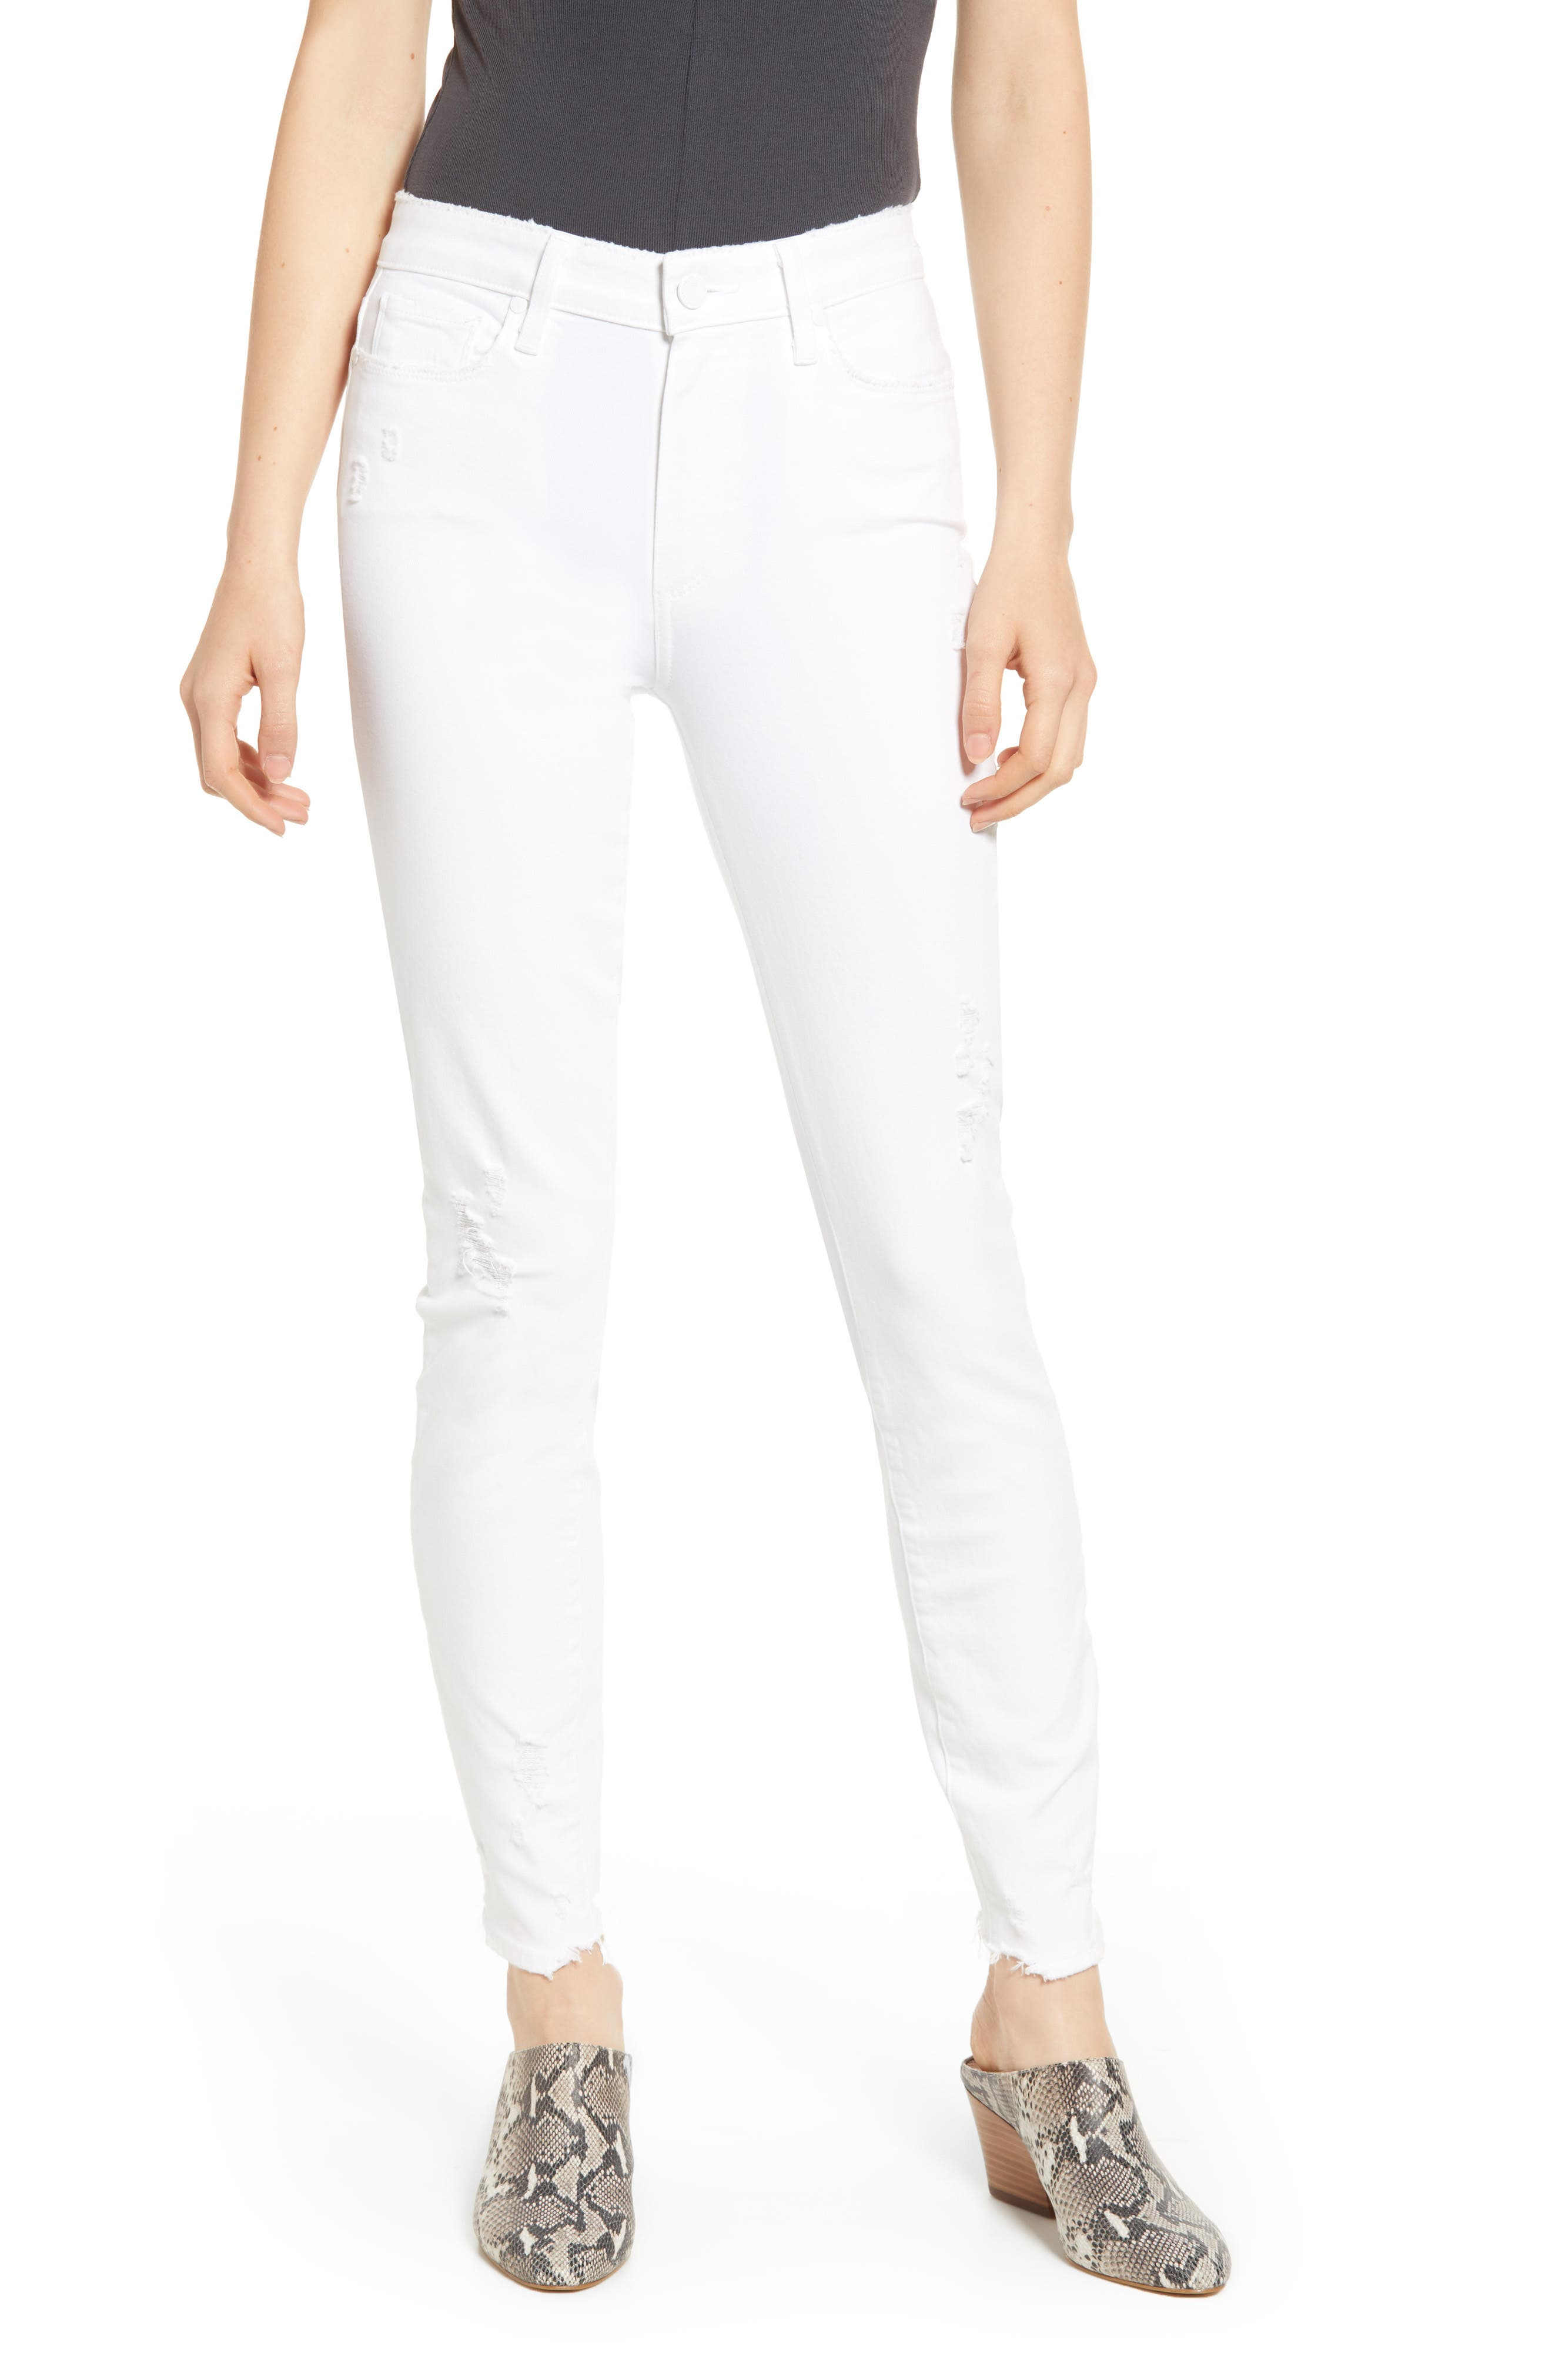 PAIGE, Hoxton High Waist Ankle Skinny Jeans, Main thumbnail 1, color, 100